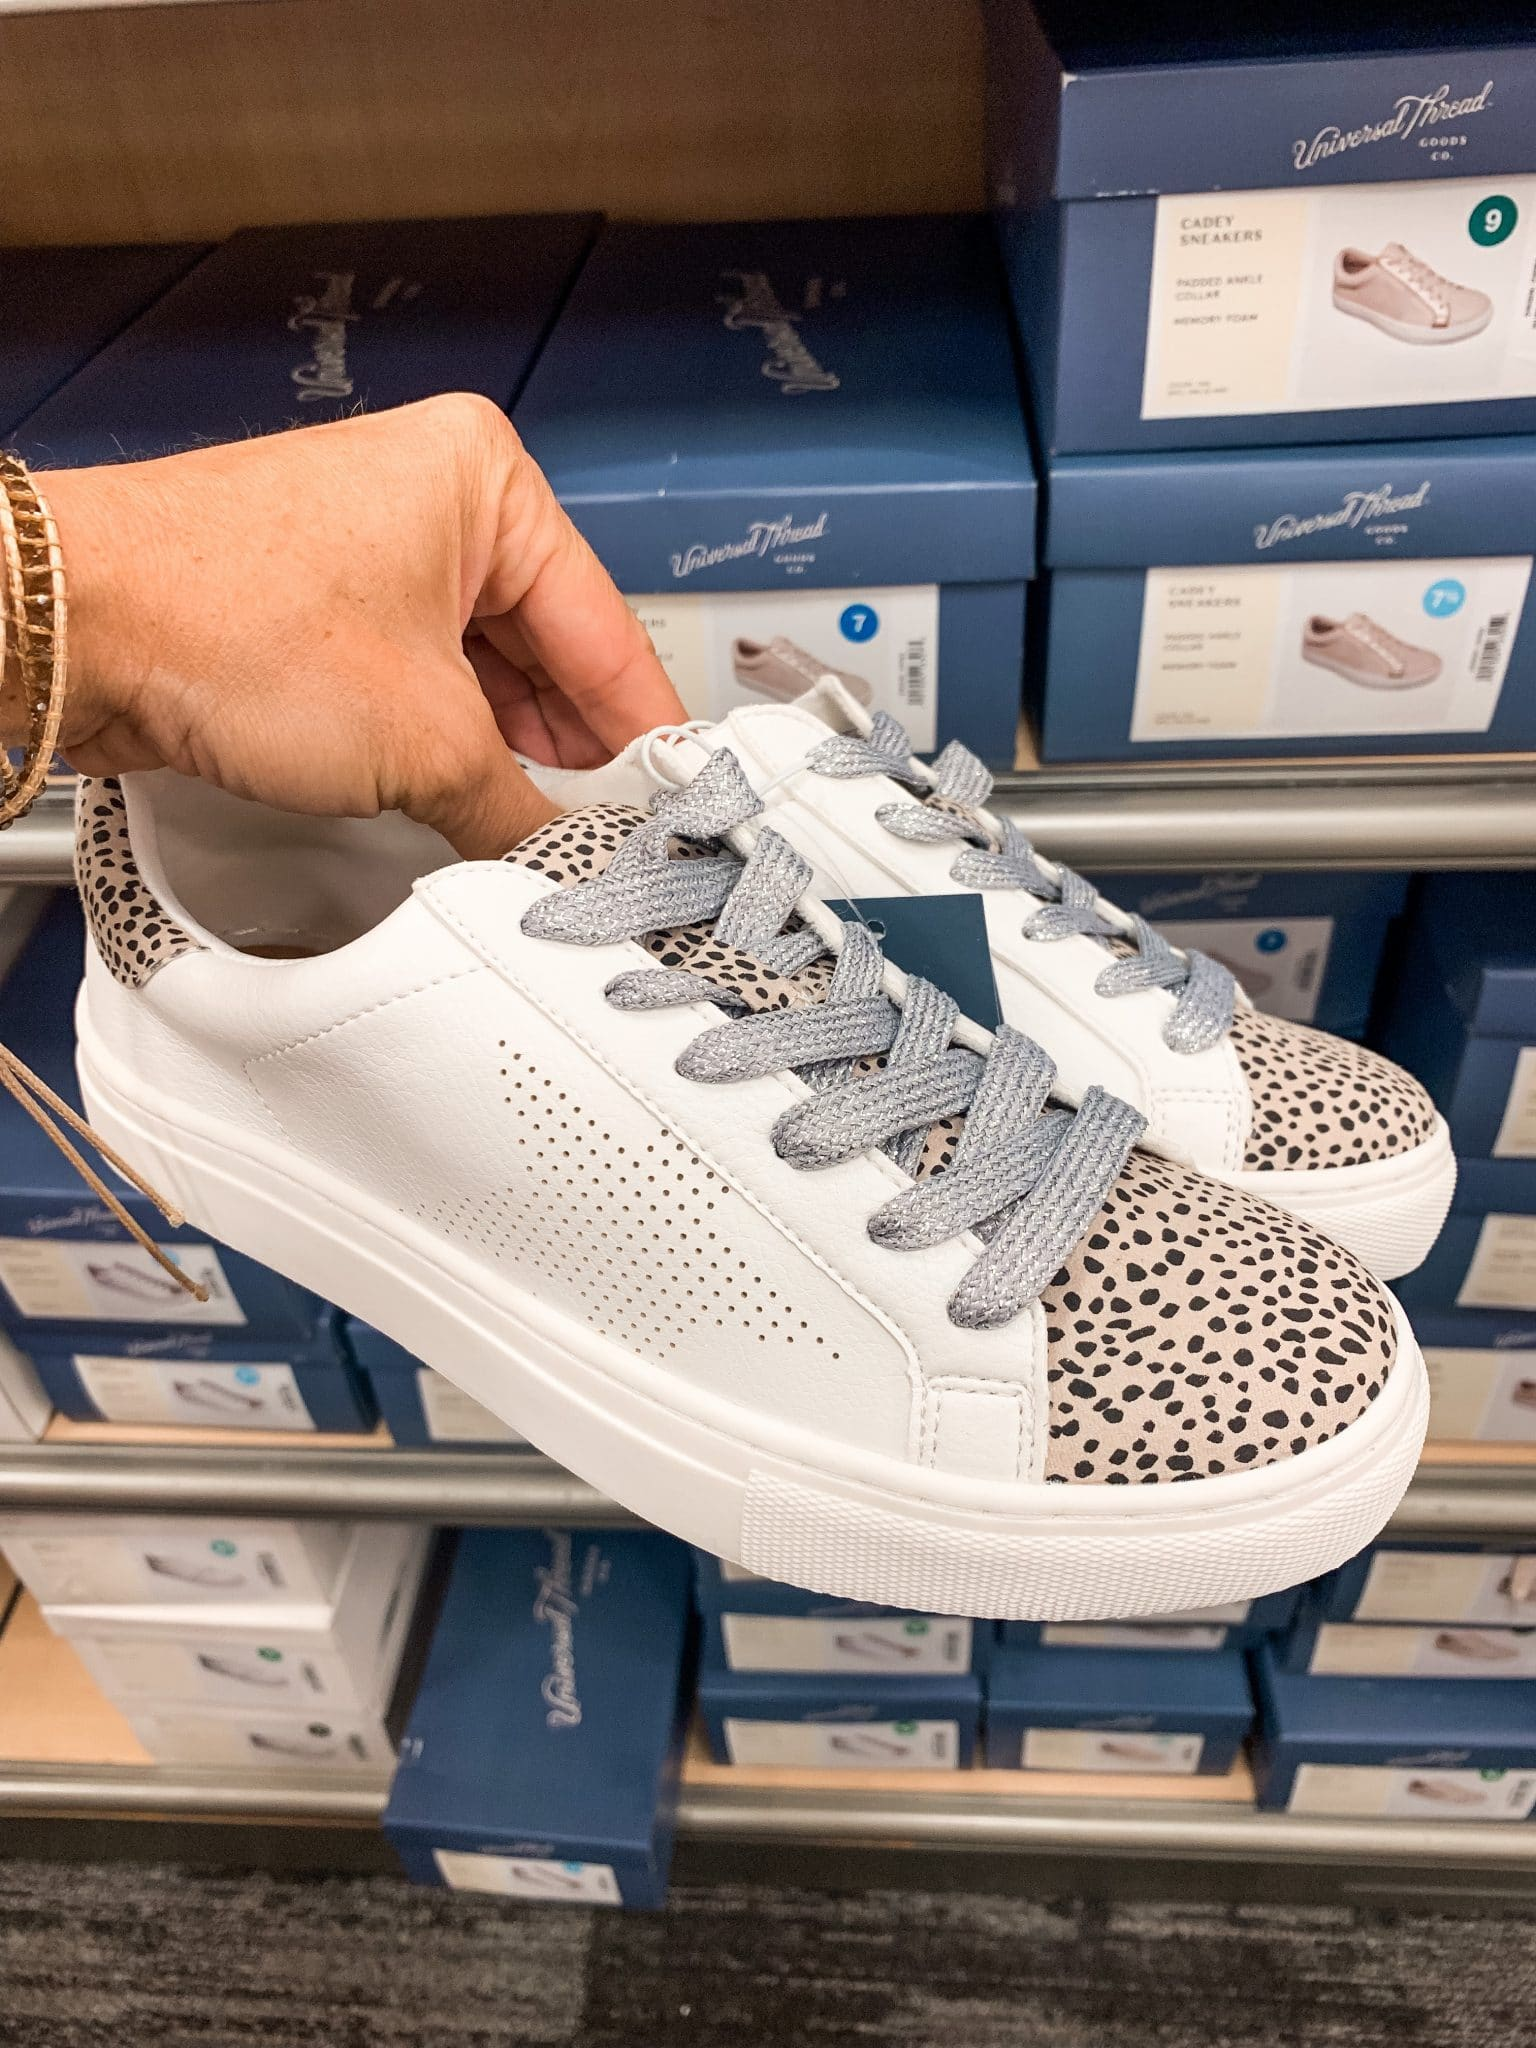 Leopard Sneakers, Target Fall Haul, Best Target finds, Stilettos and Diapers